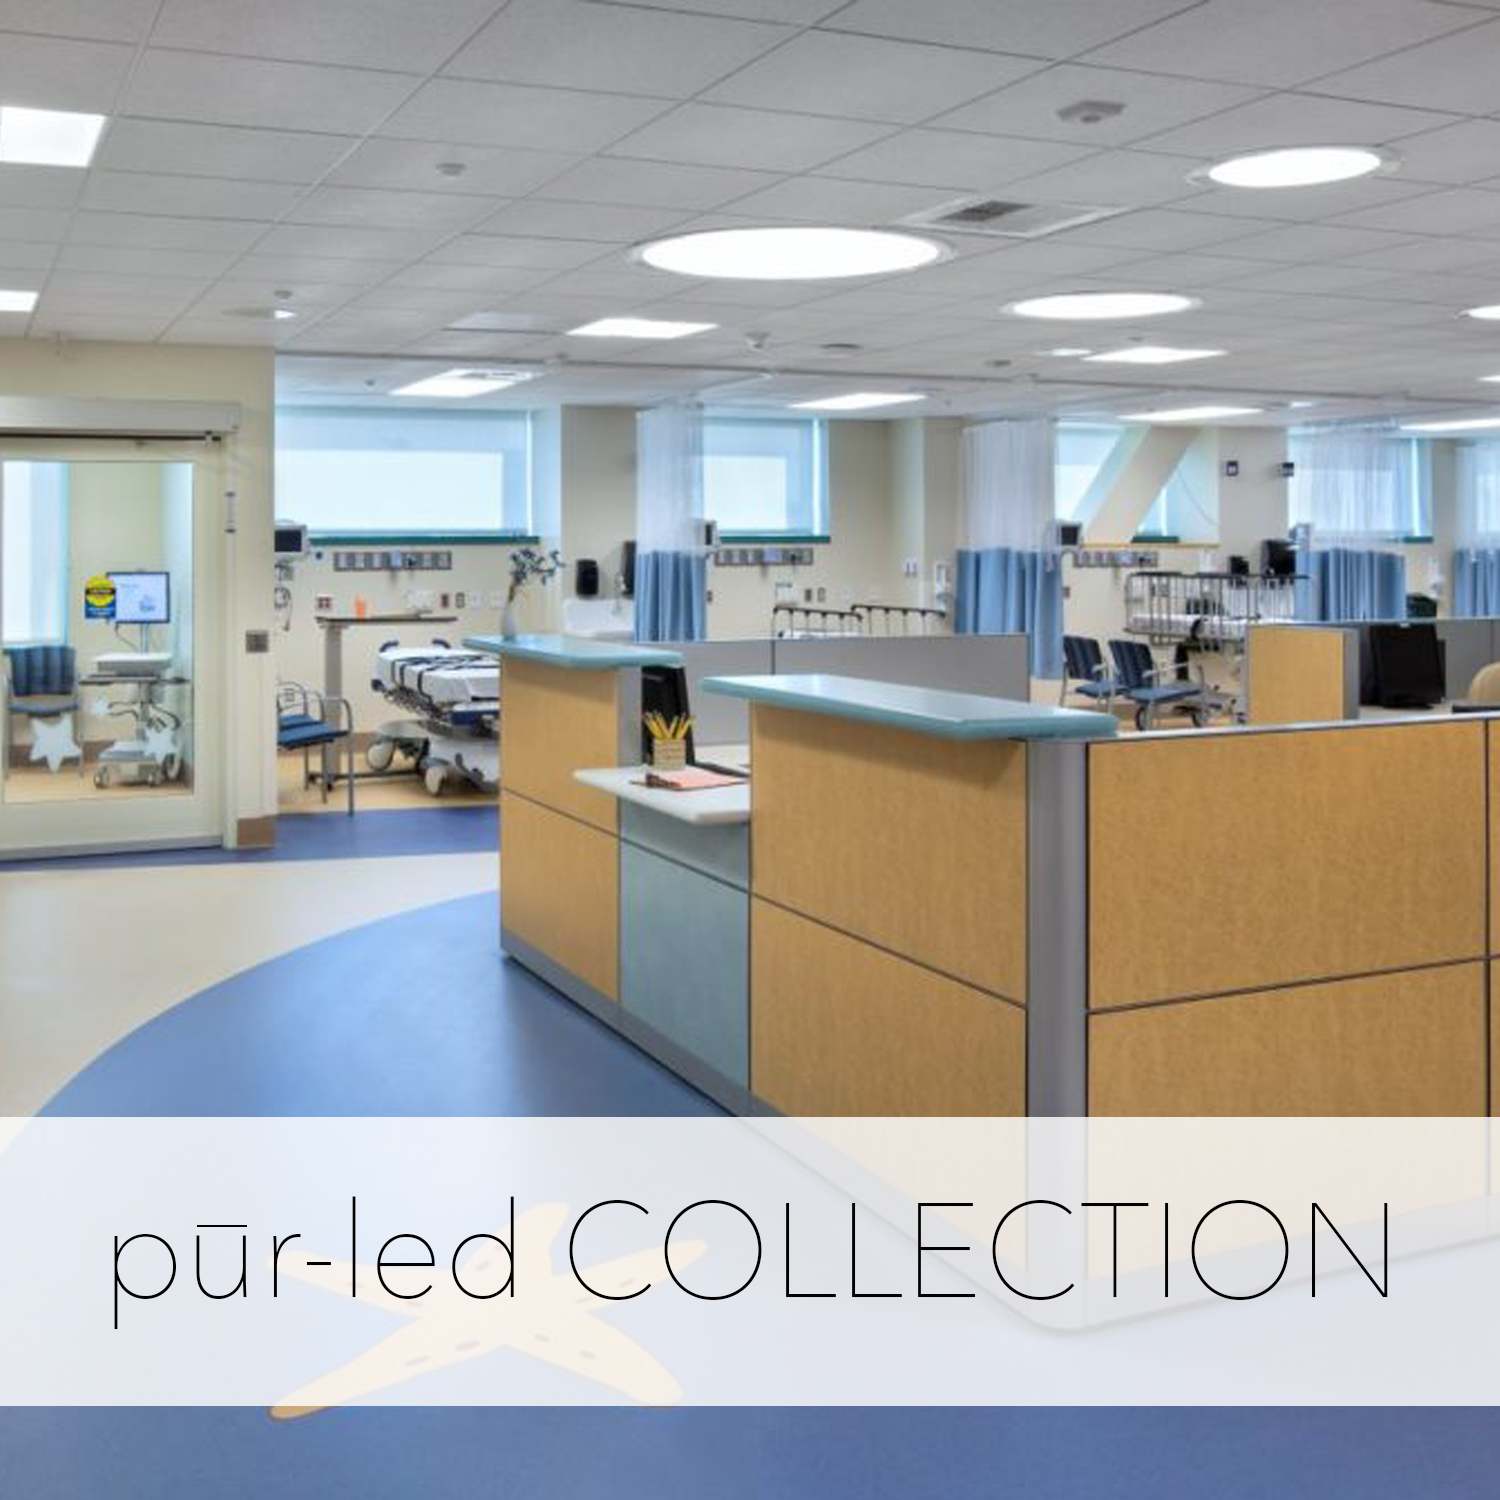 PUR-LED DISINFECTING LIGHTING AT PMC LIGHTING